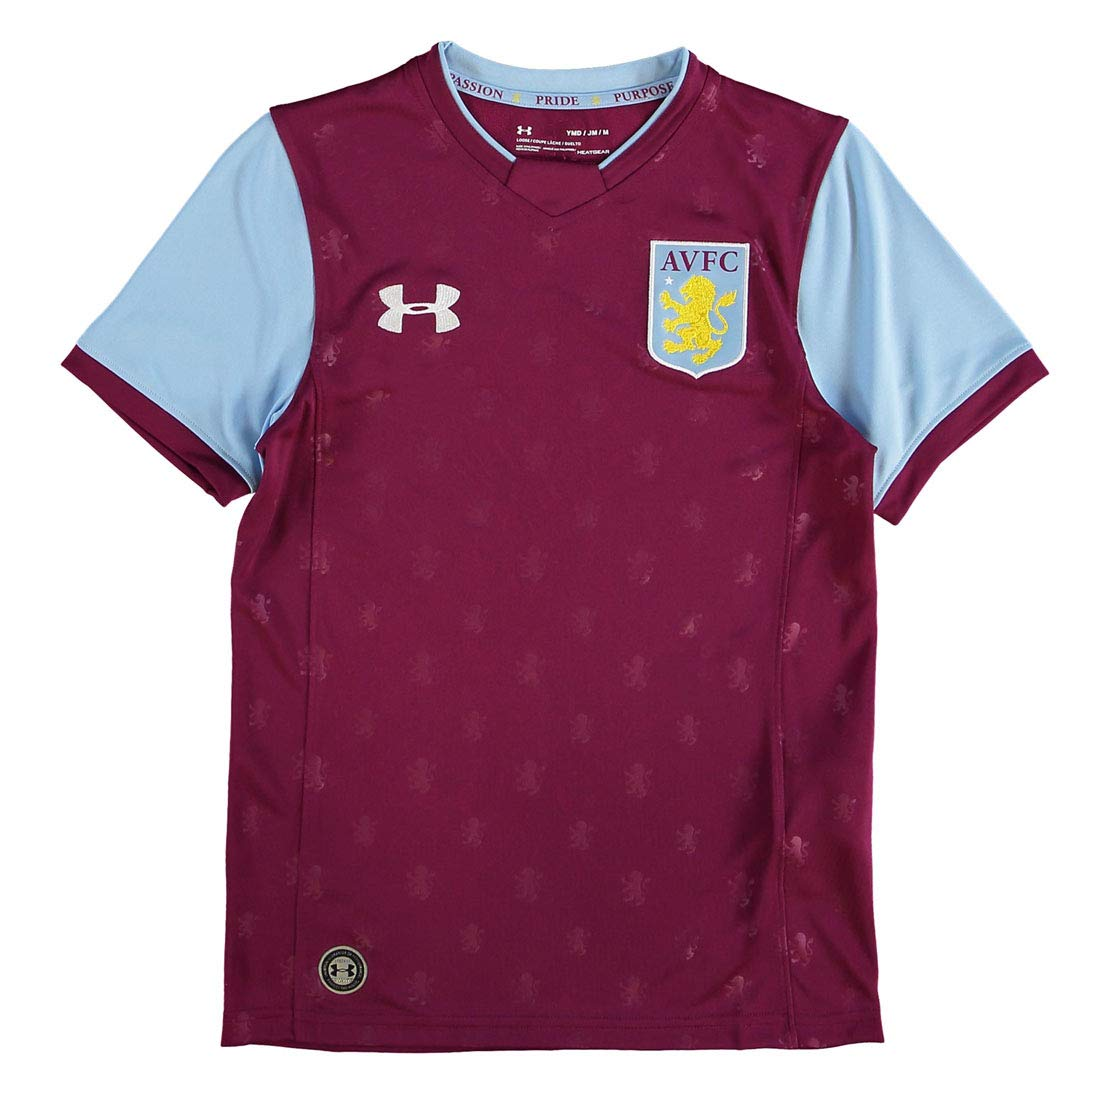 Royal Magenta Under Armour Aston Villa 17 18 Kids Home Football Replica Kit Fan Shirts Cloverlakeliving Com